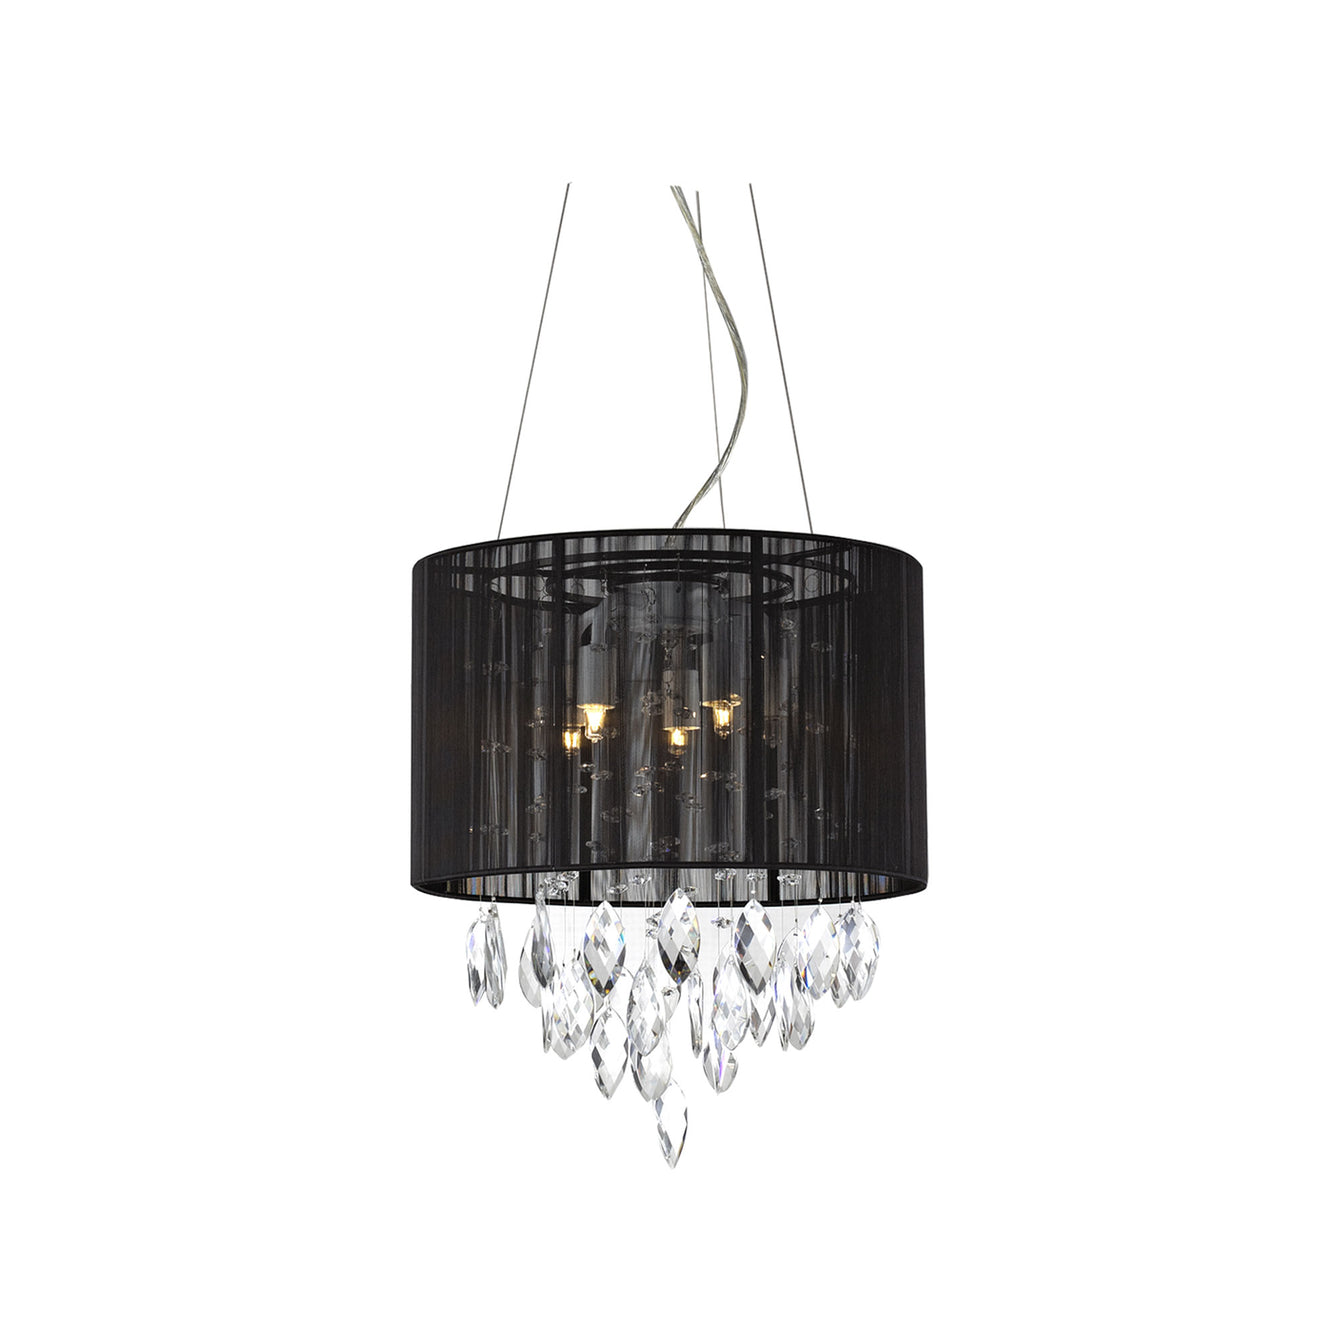 Sudbury Pendant LED Light - Buy It Better Default Title